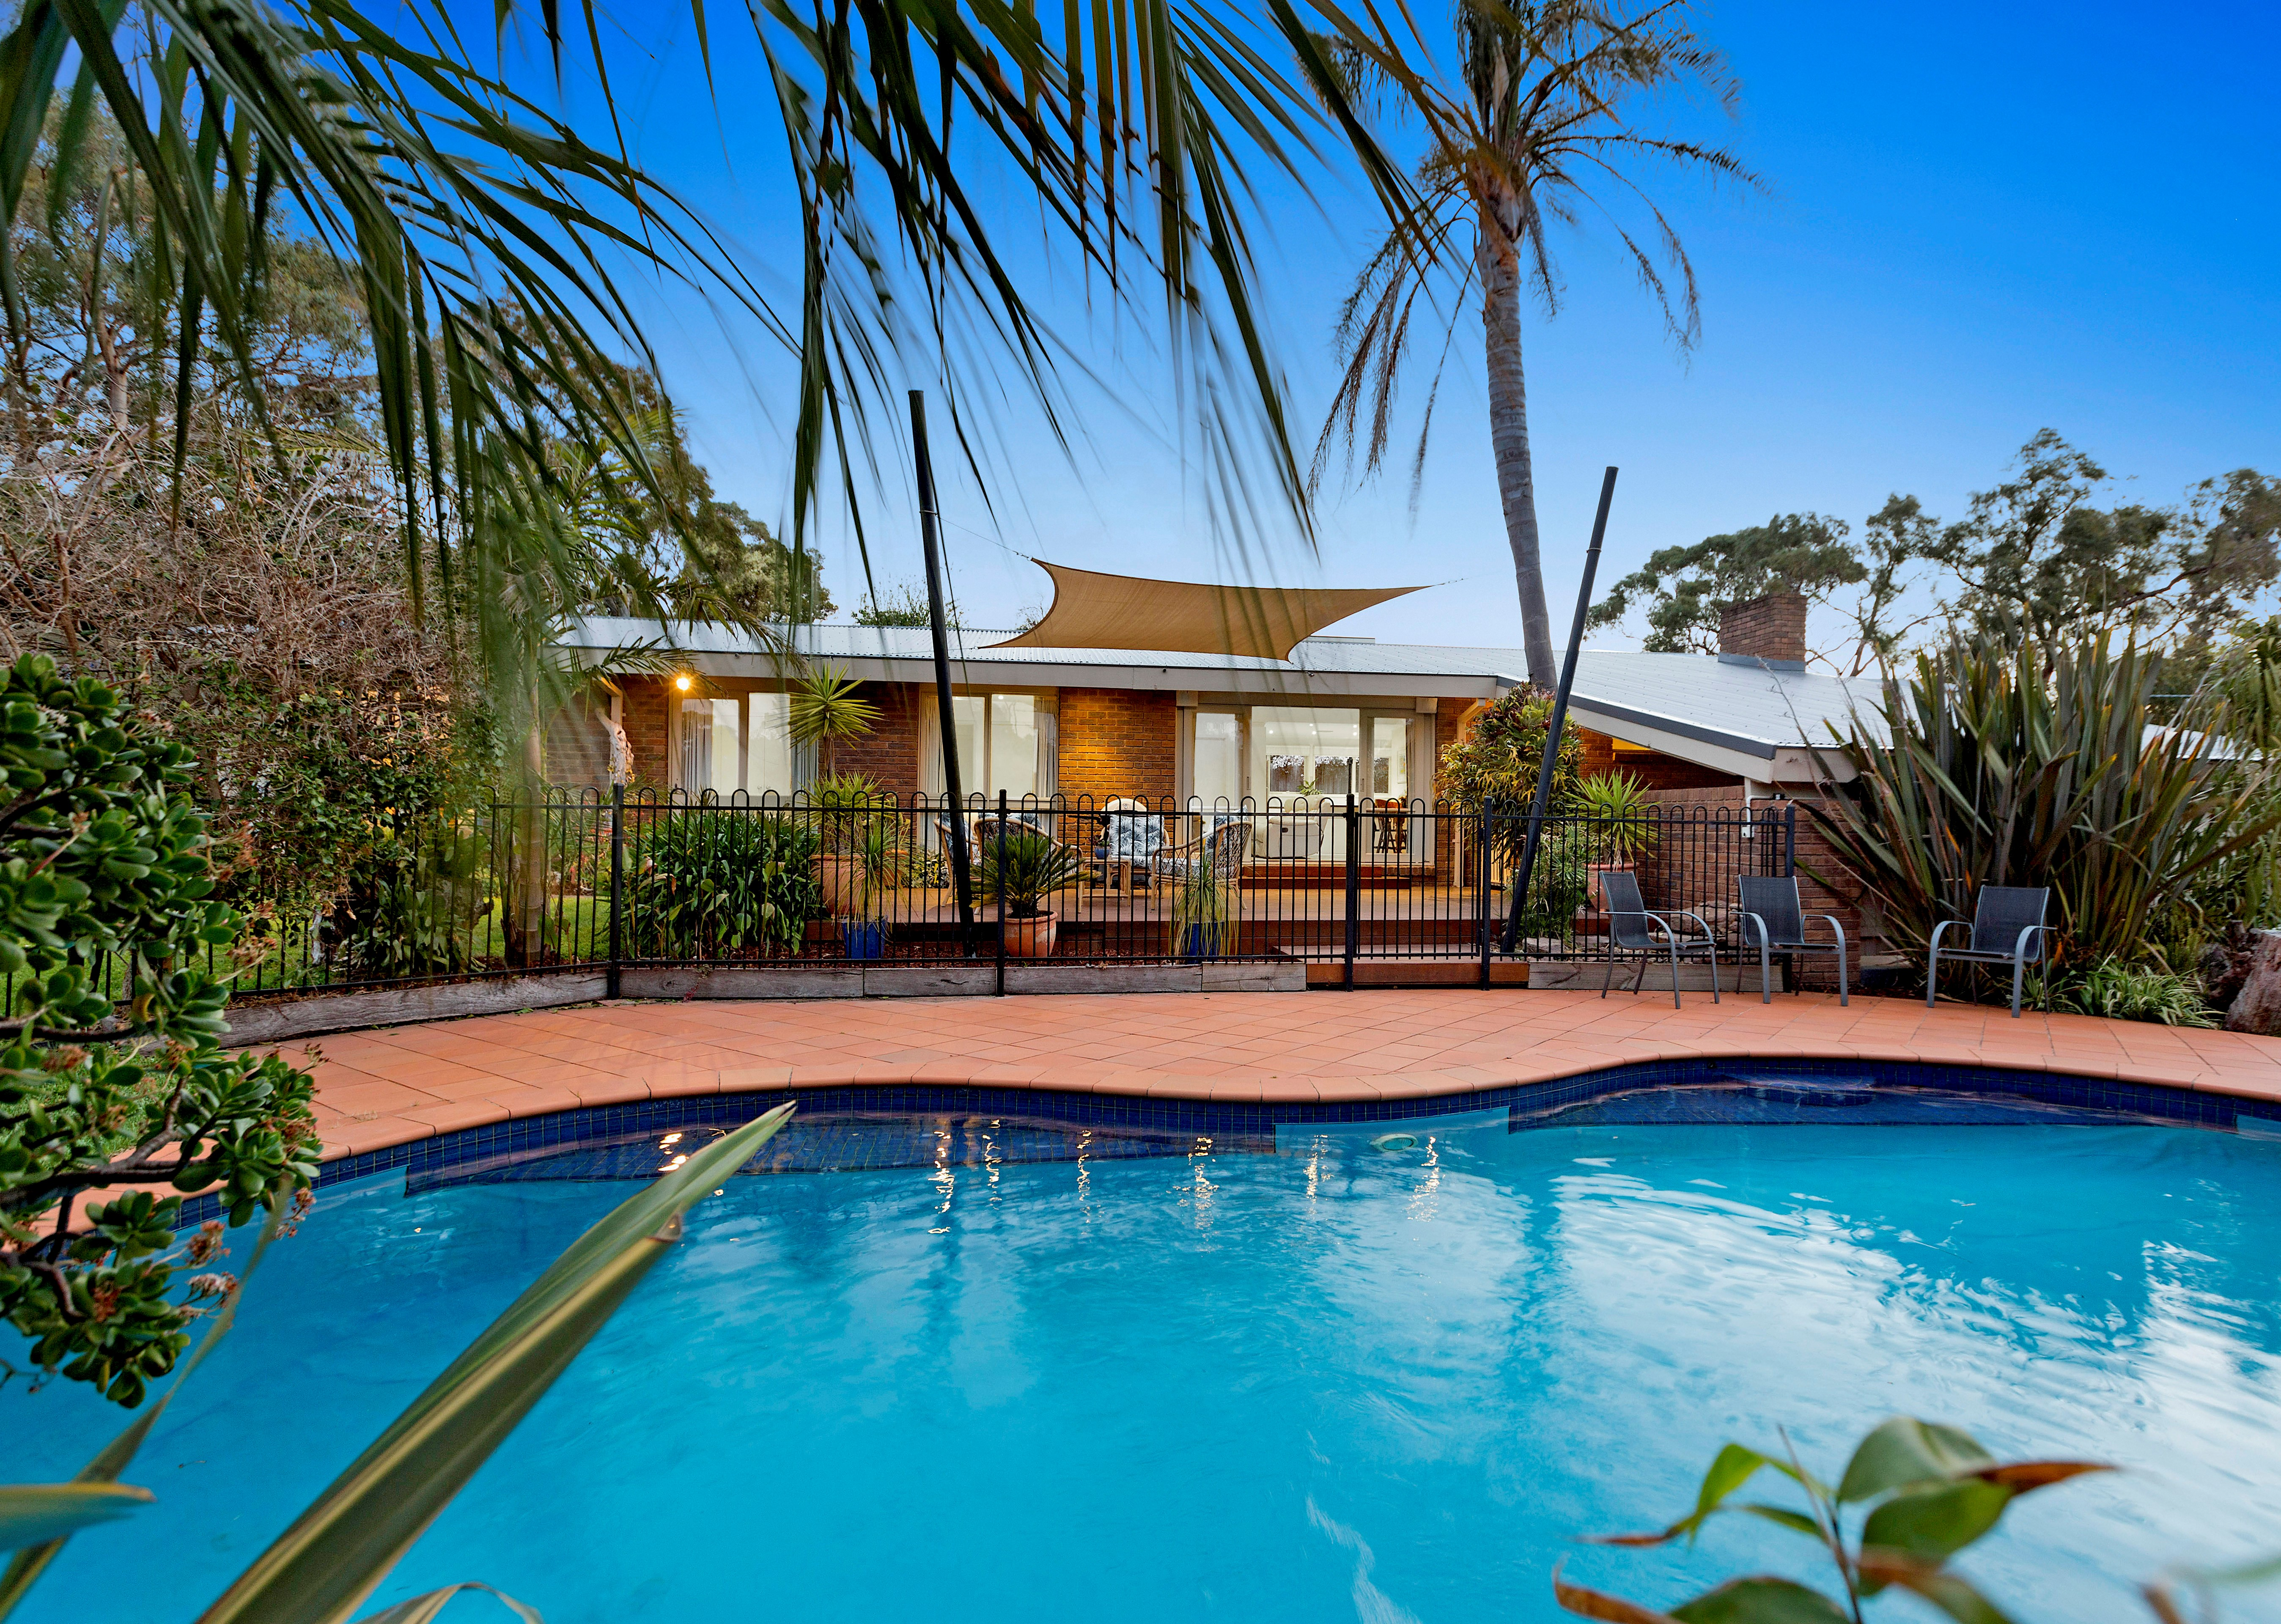 35-37 Autumn Crescent, MOUNT ELIZA, VIC, 3930 - Image